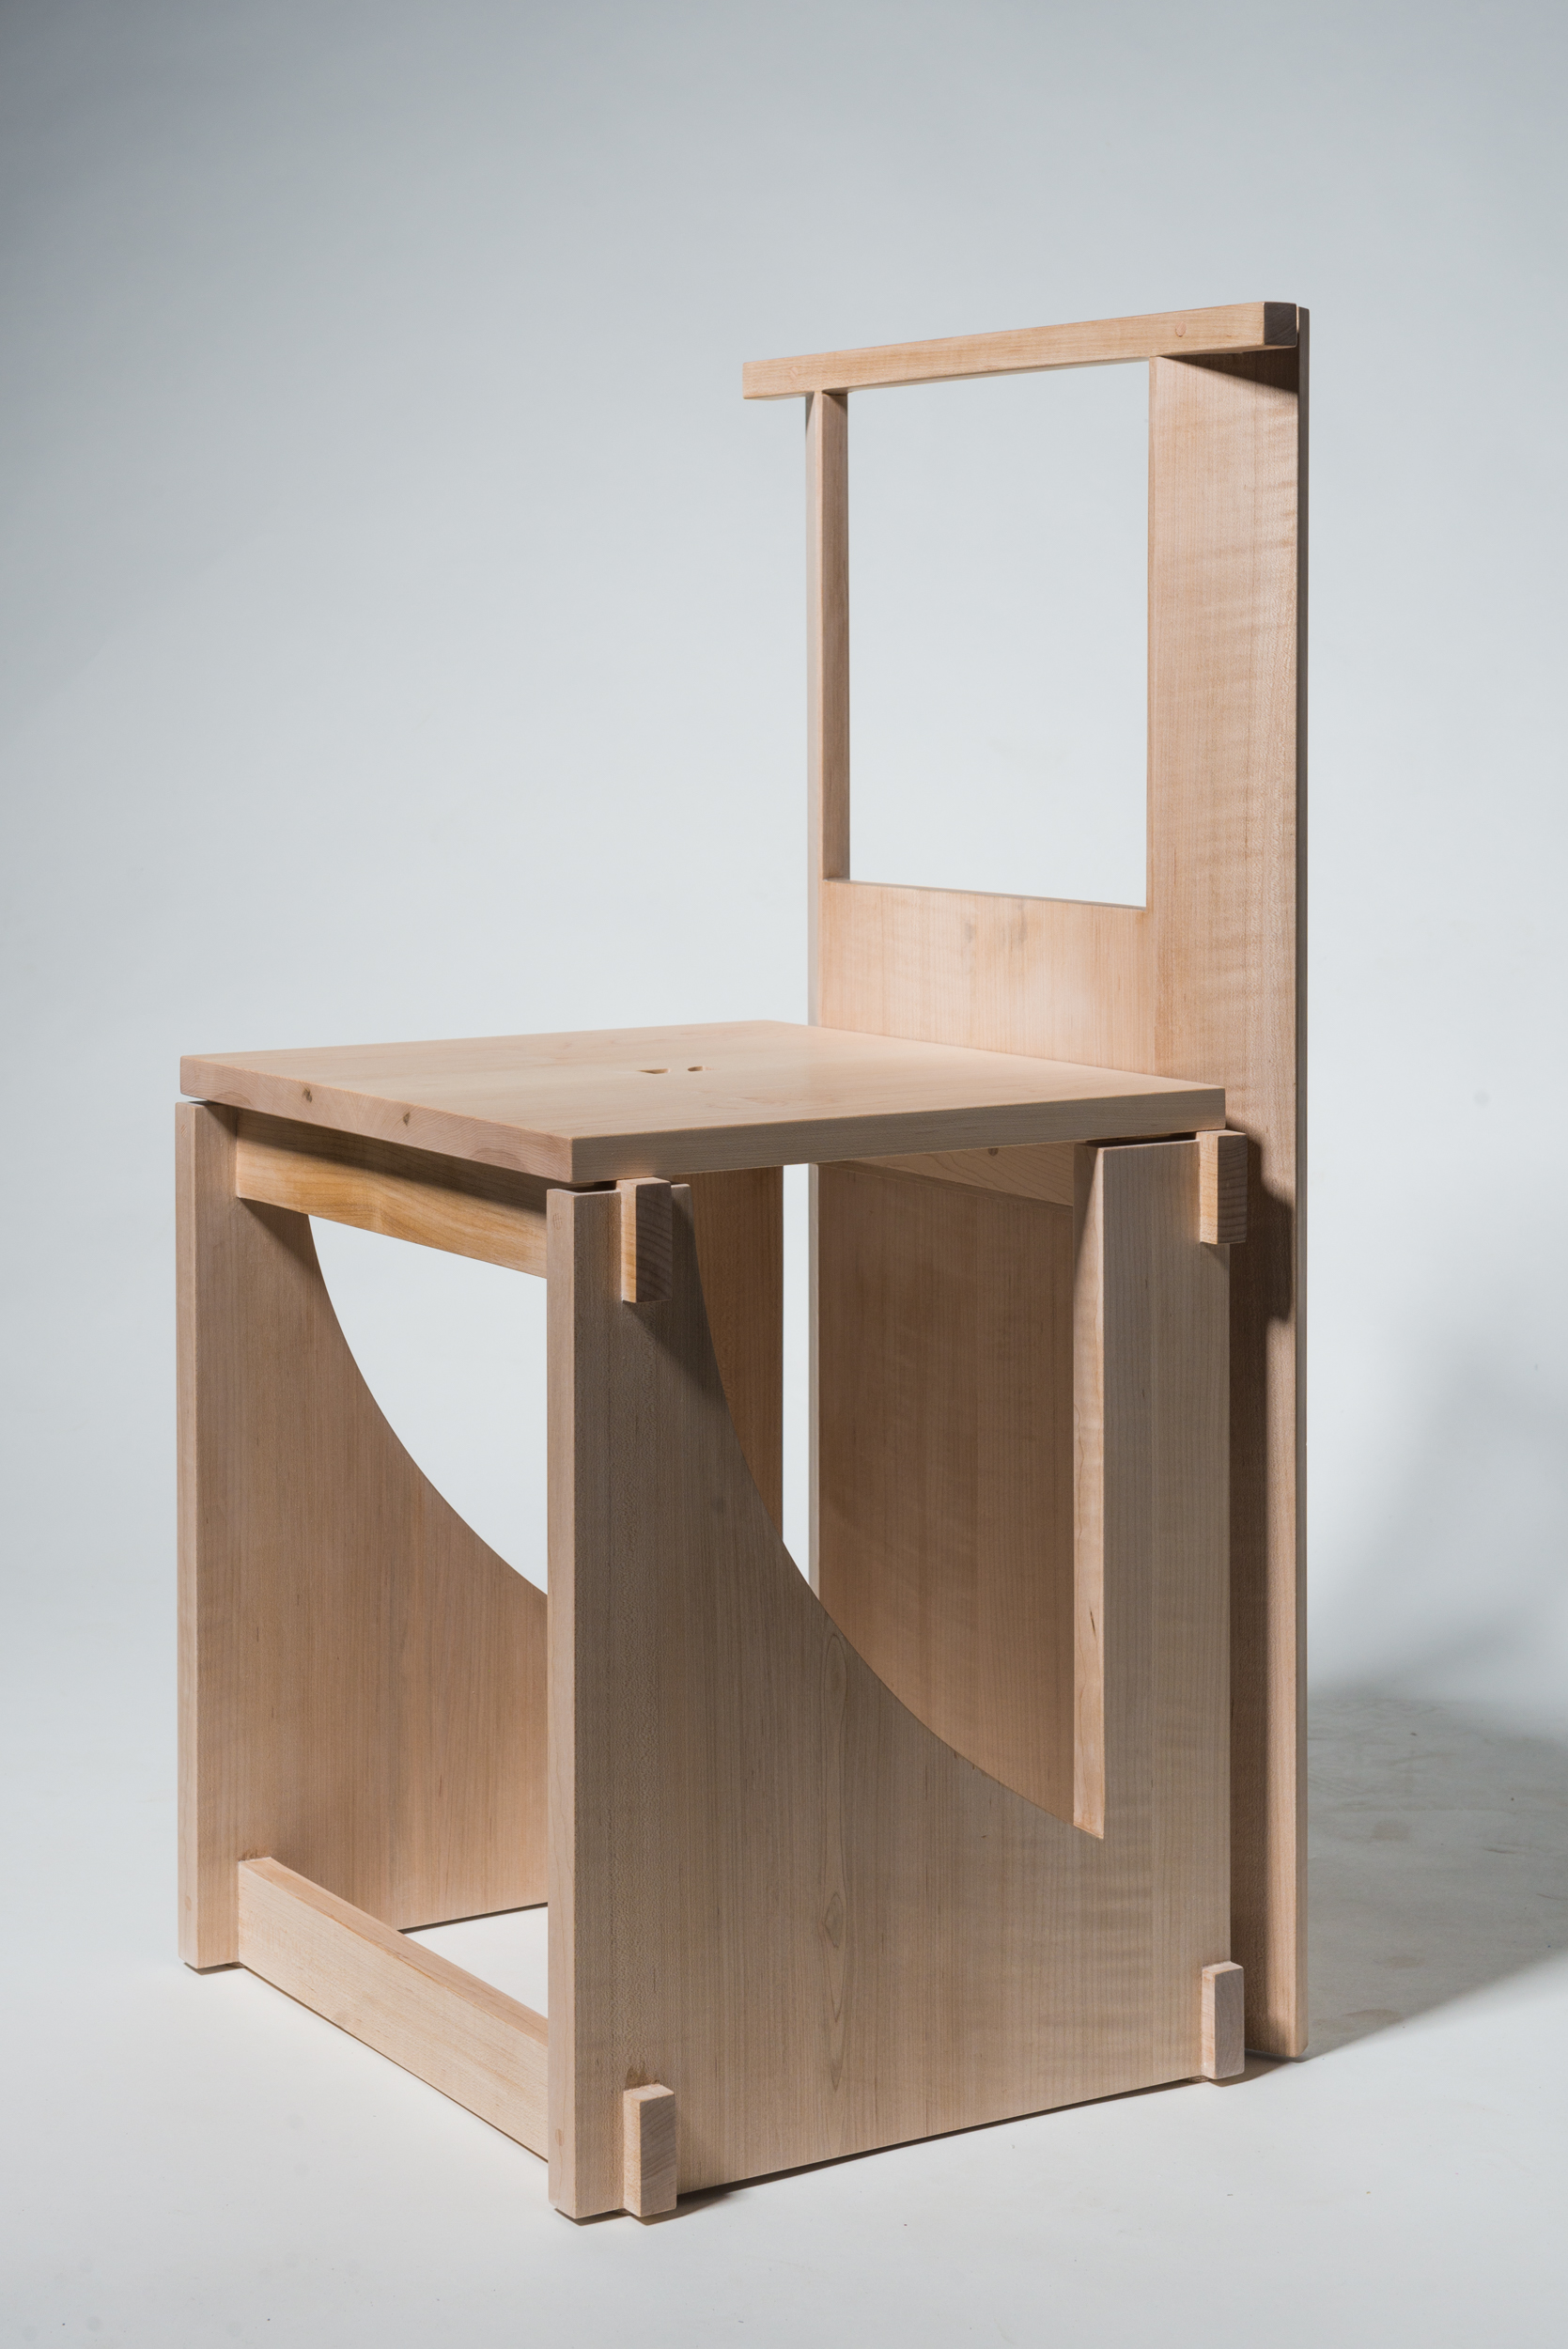 A chair designed by Yichi Cheng